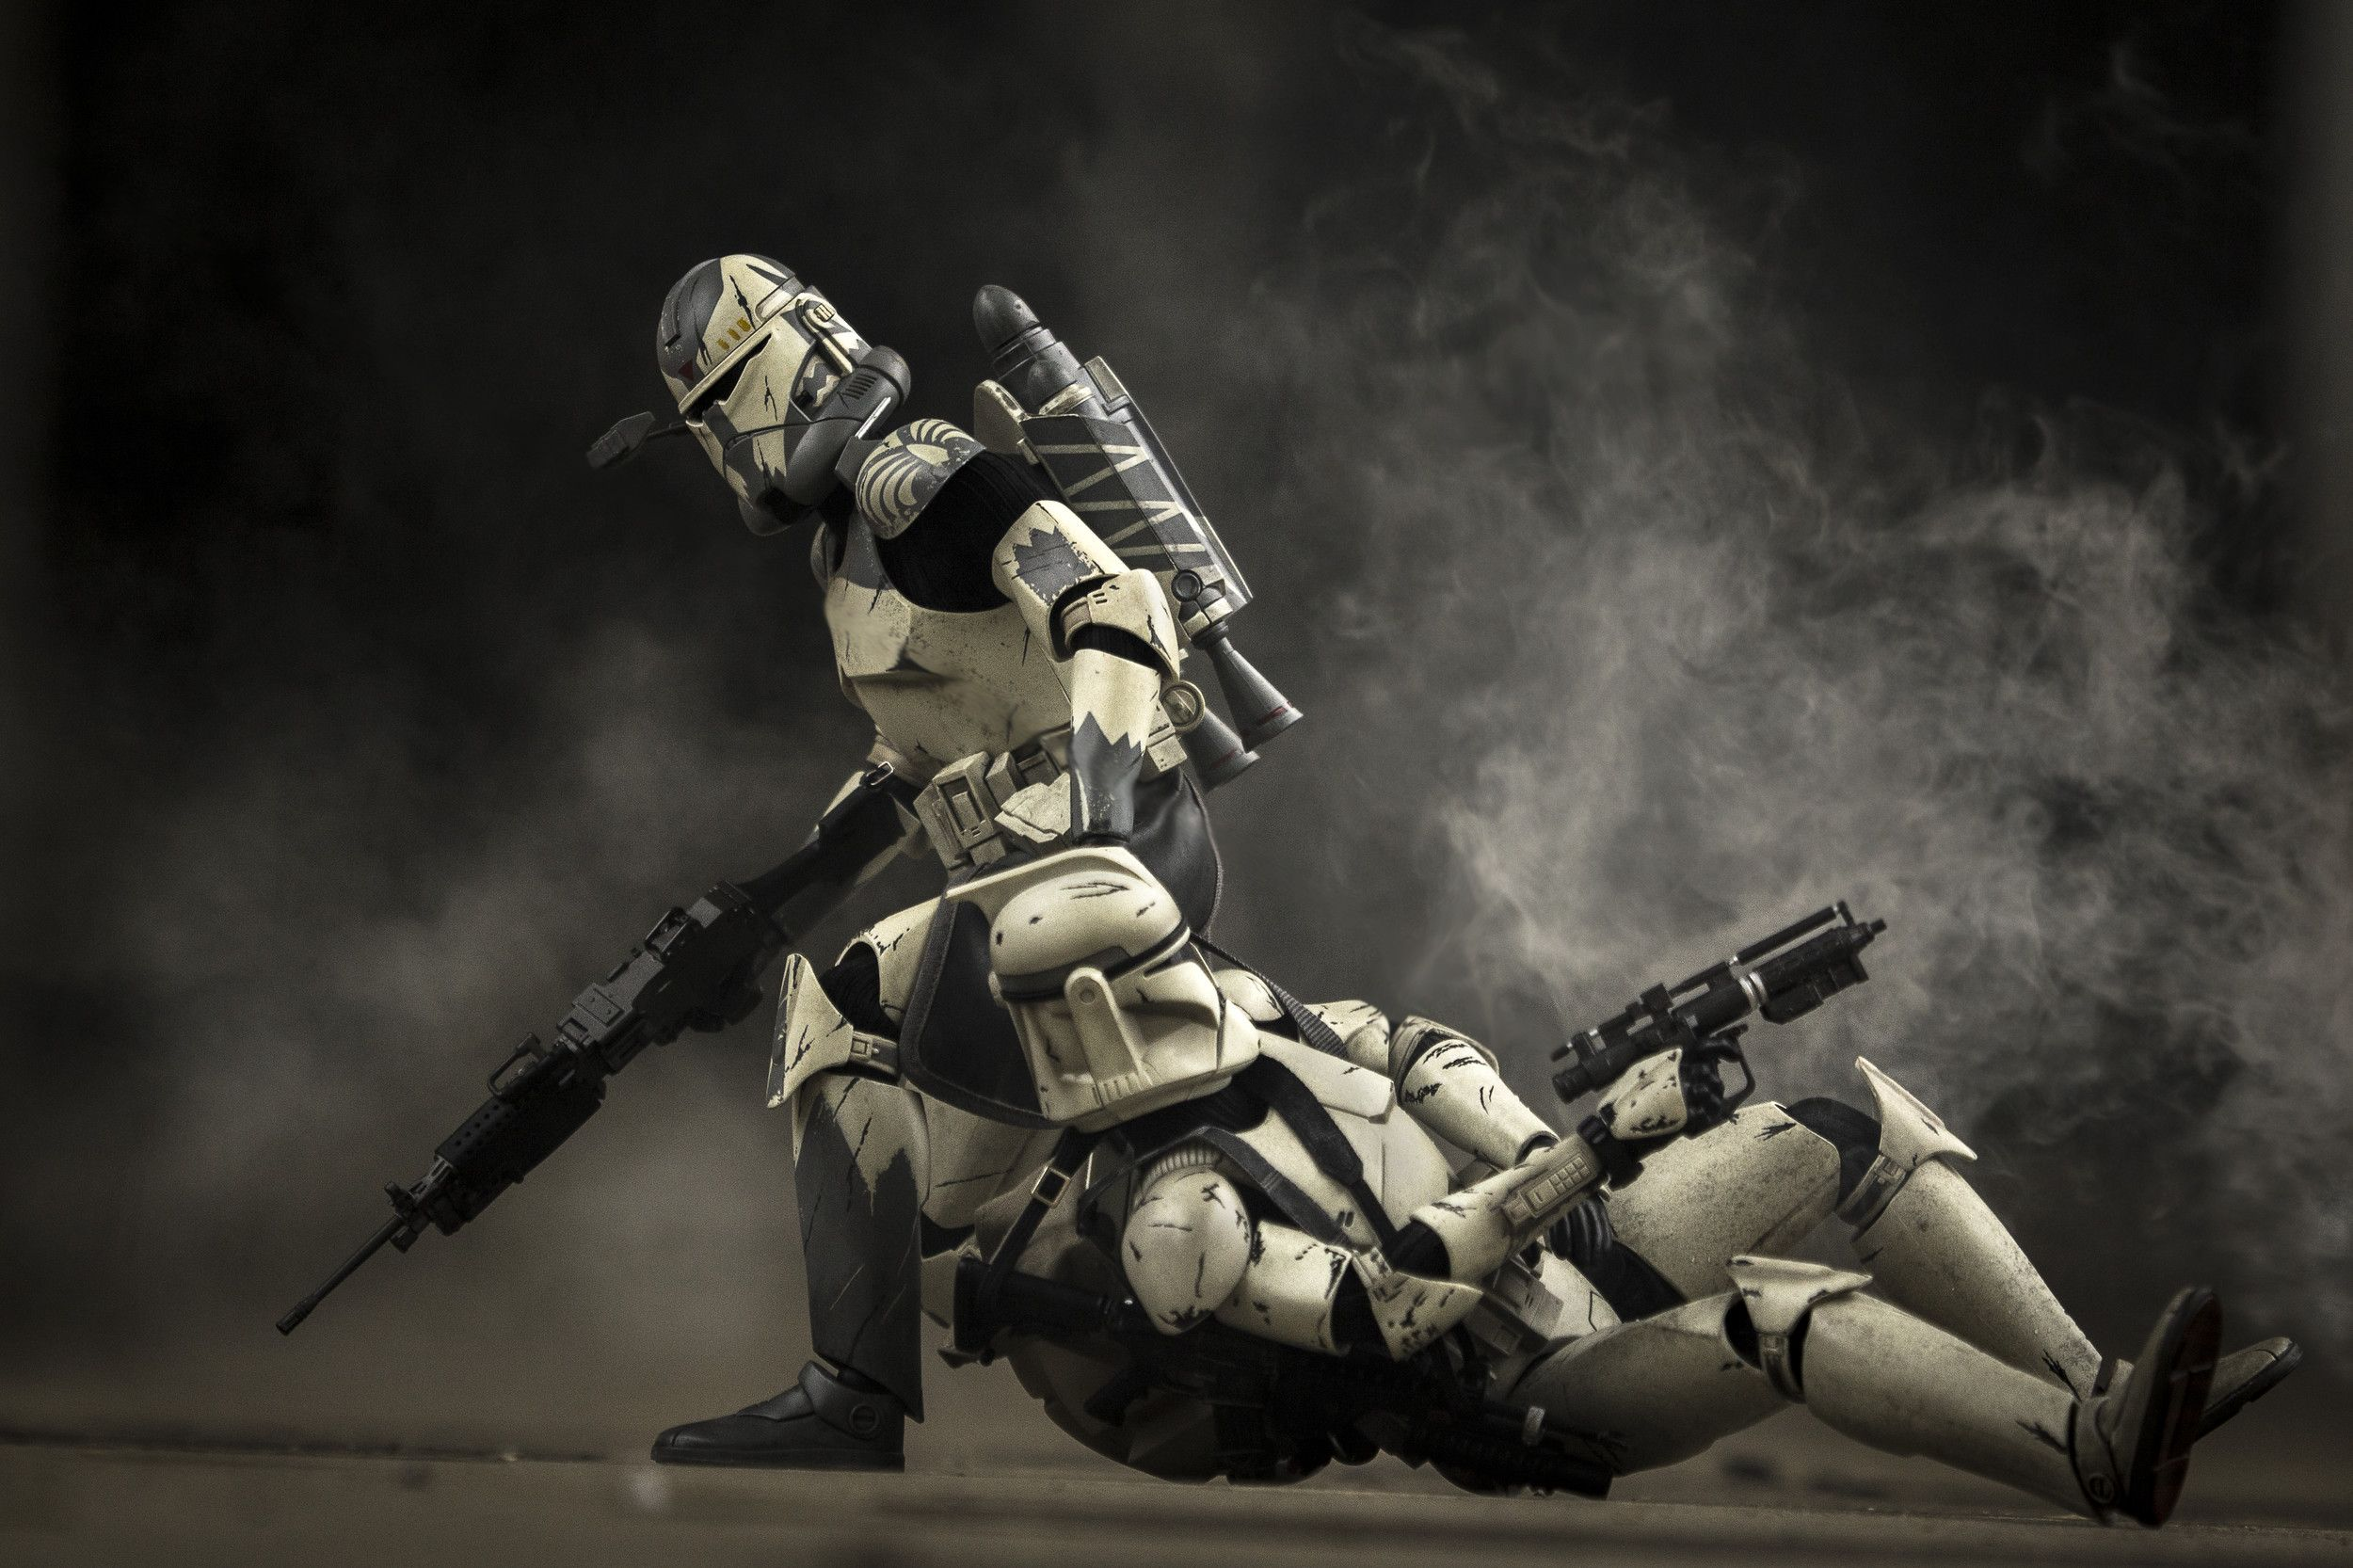 501st Clone Trooper Wallpaper 93 images in Collection Page 1 2500x1666